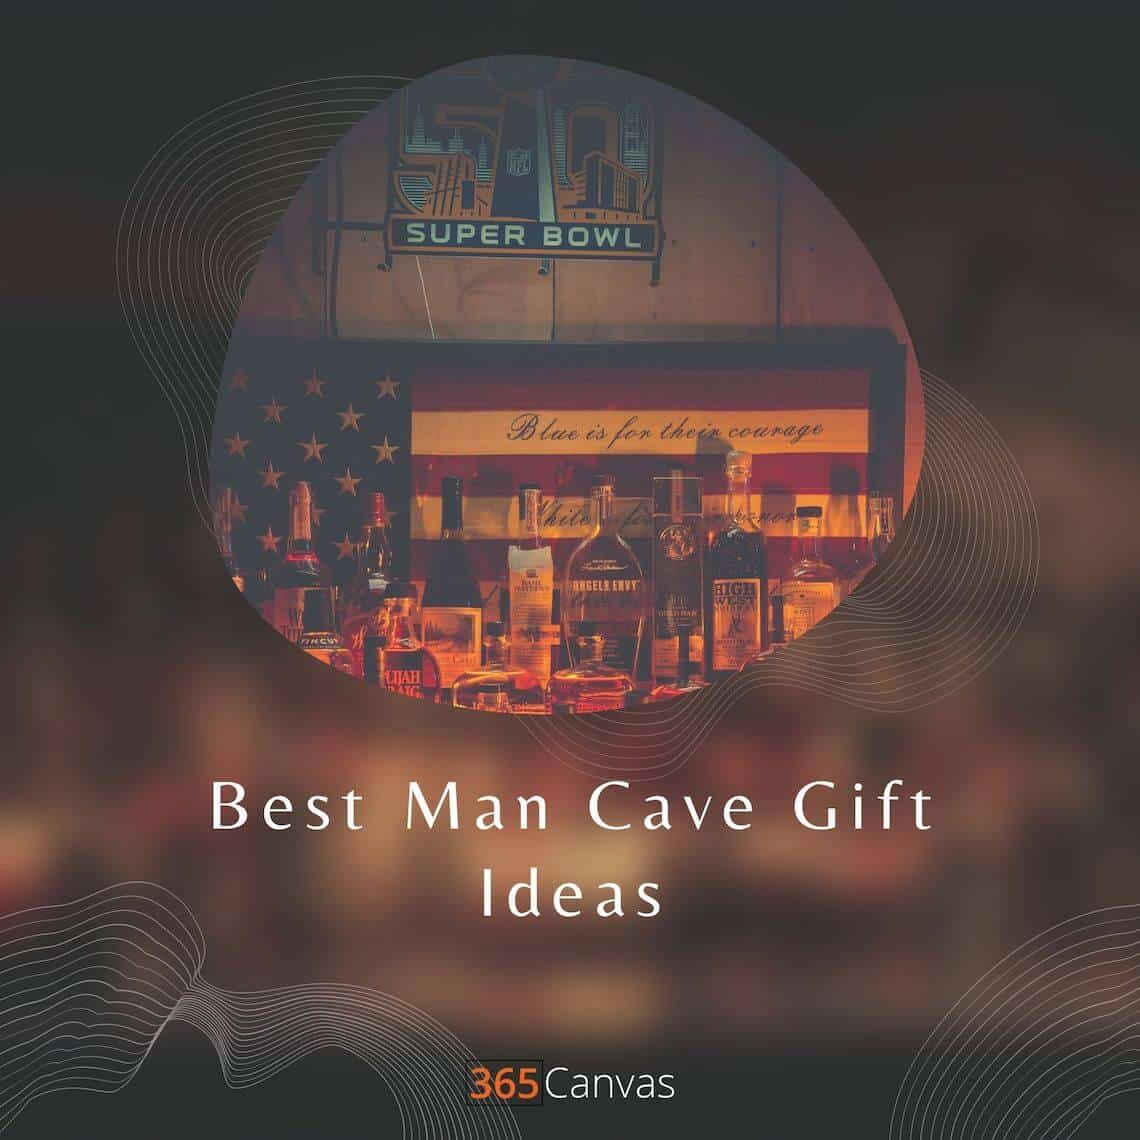 Man Cave Gifts: 45 Awesome Ideas To Bolster A Man's Pride In 2021